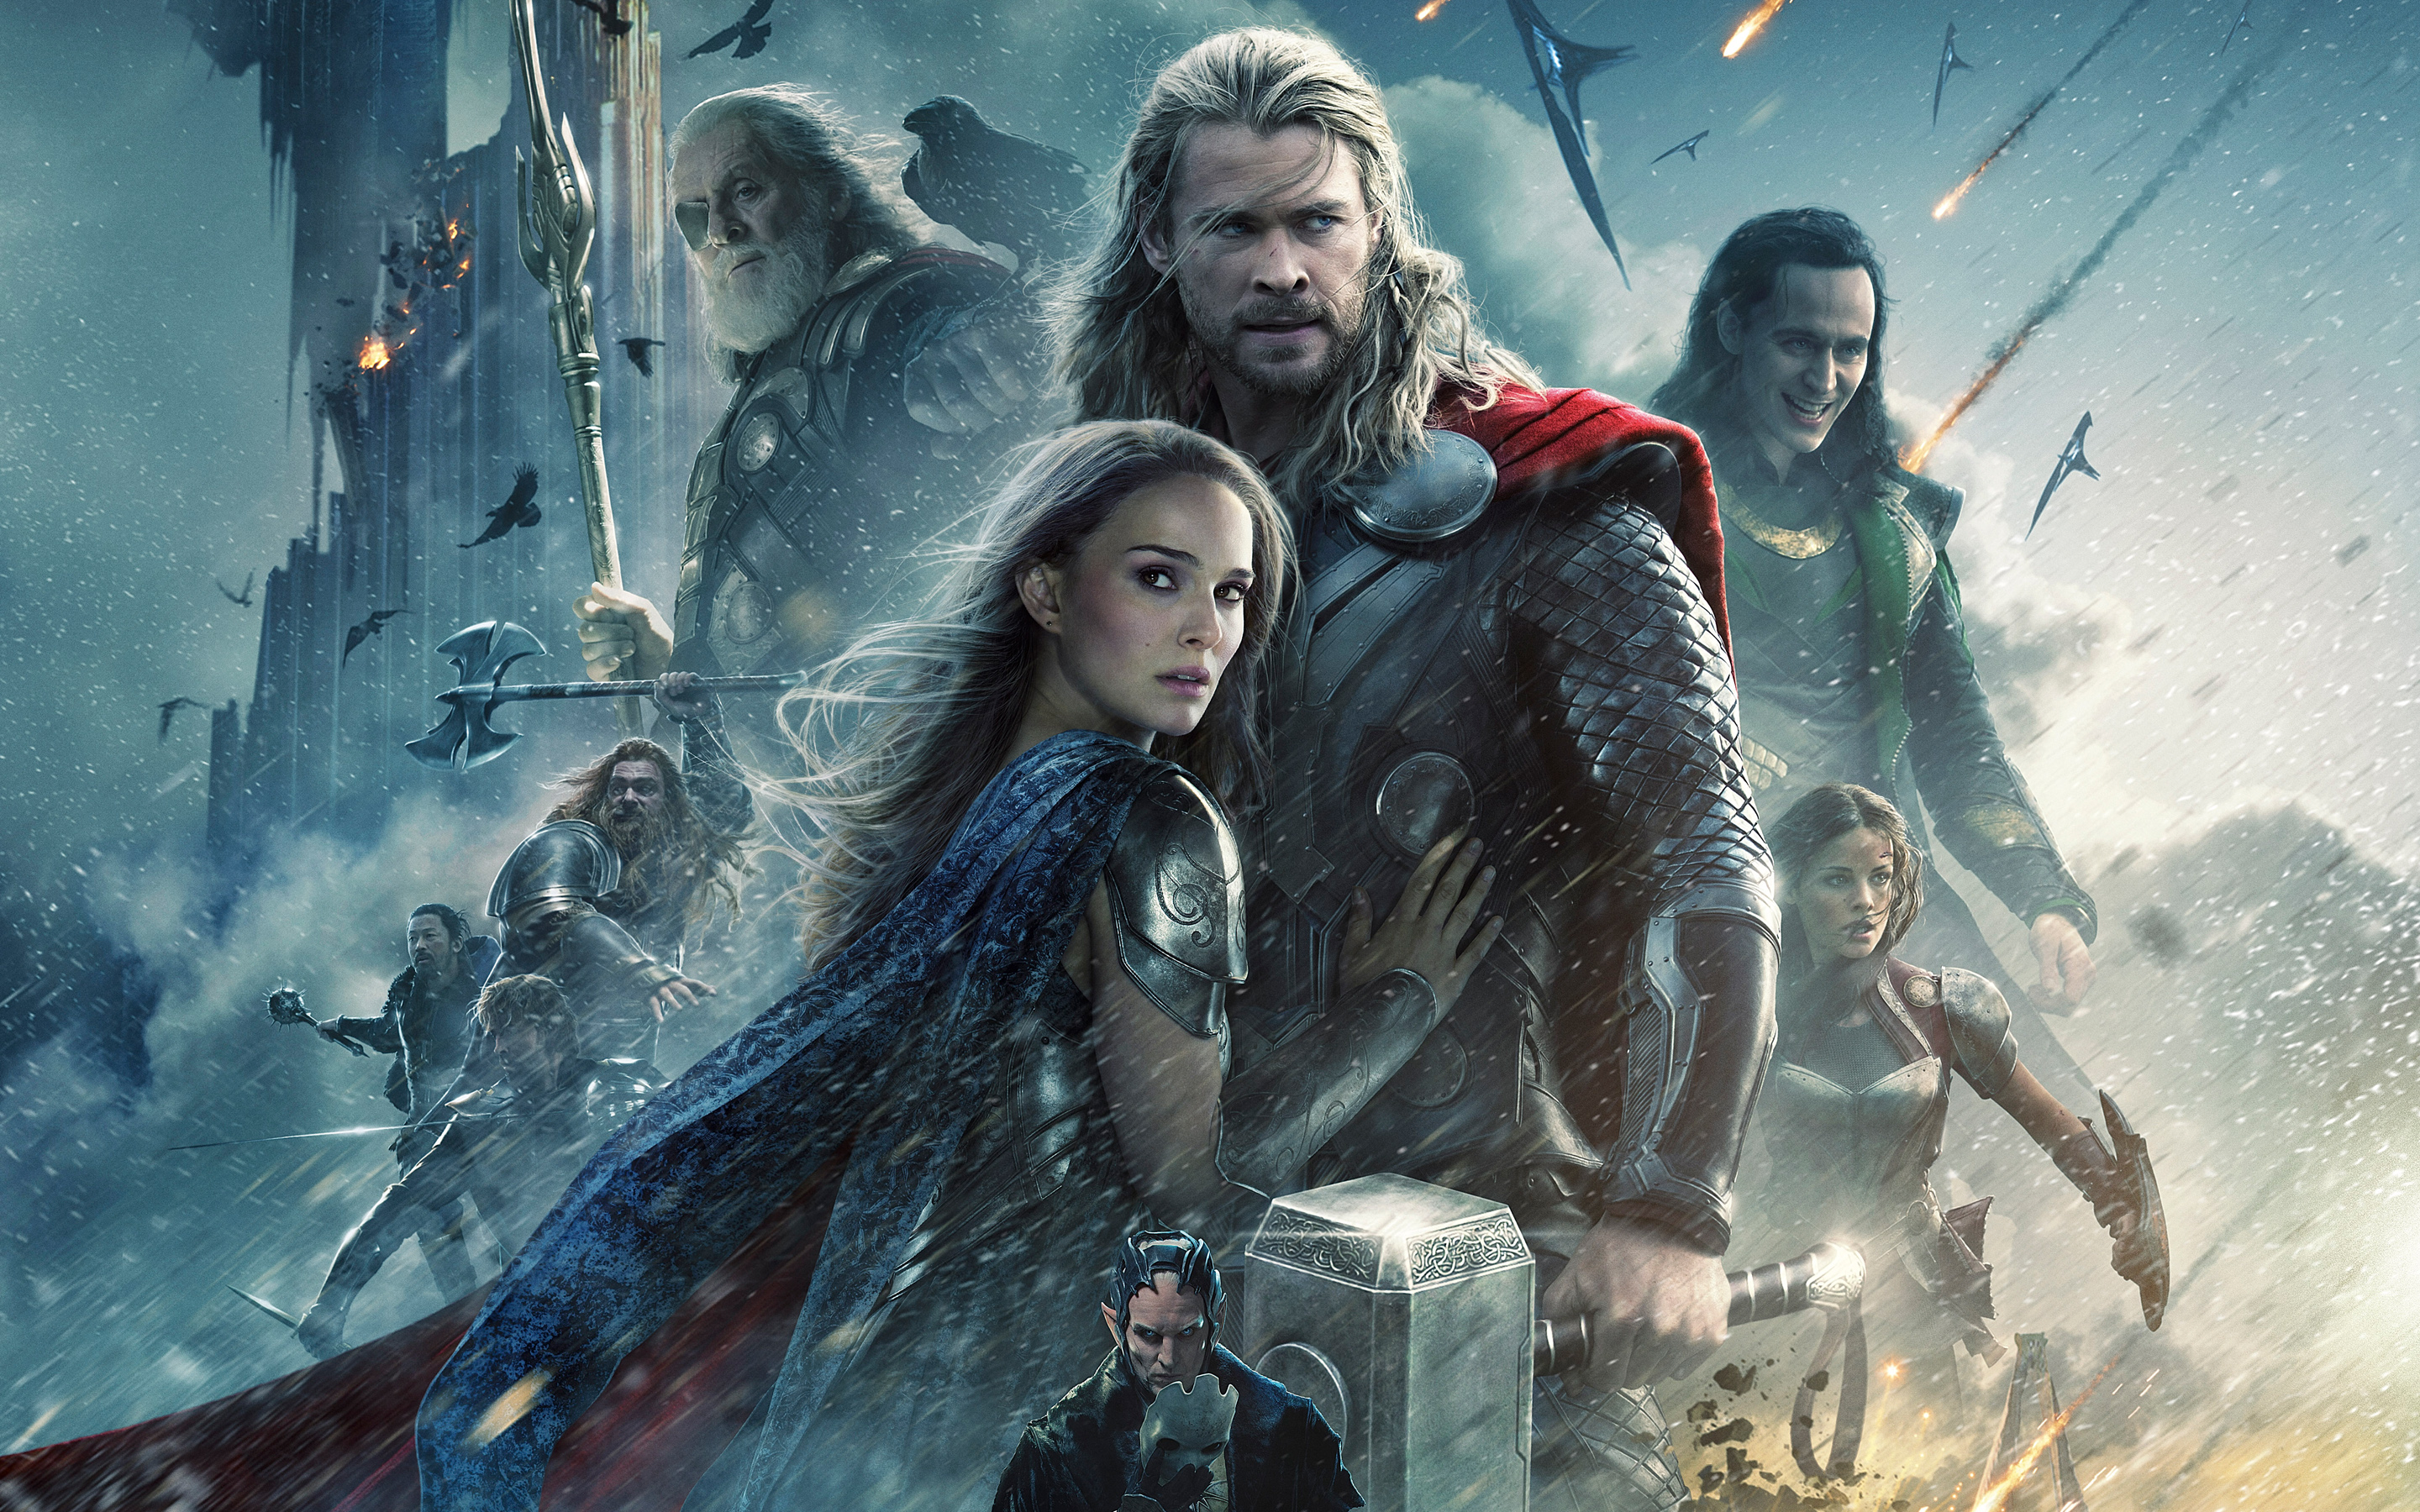 HD Wallpapers 2013 Thor 2 The Dark World